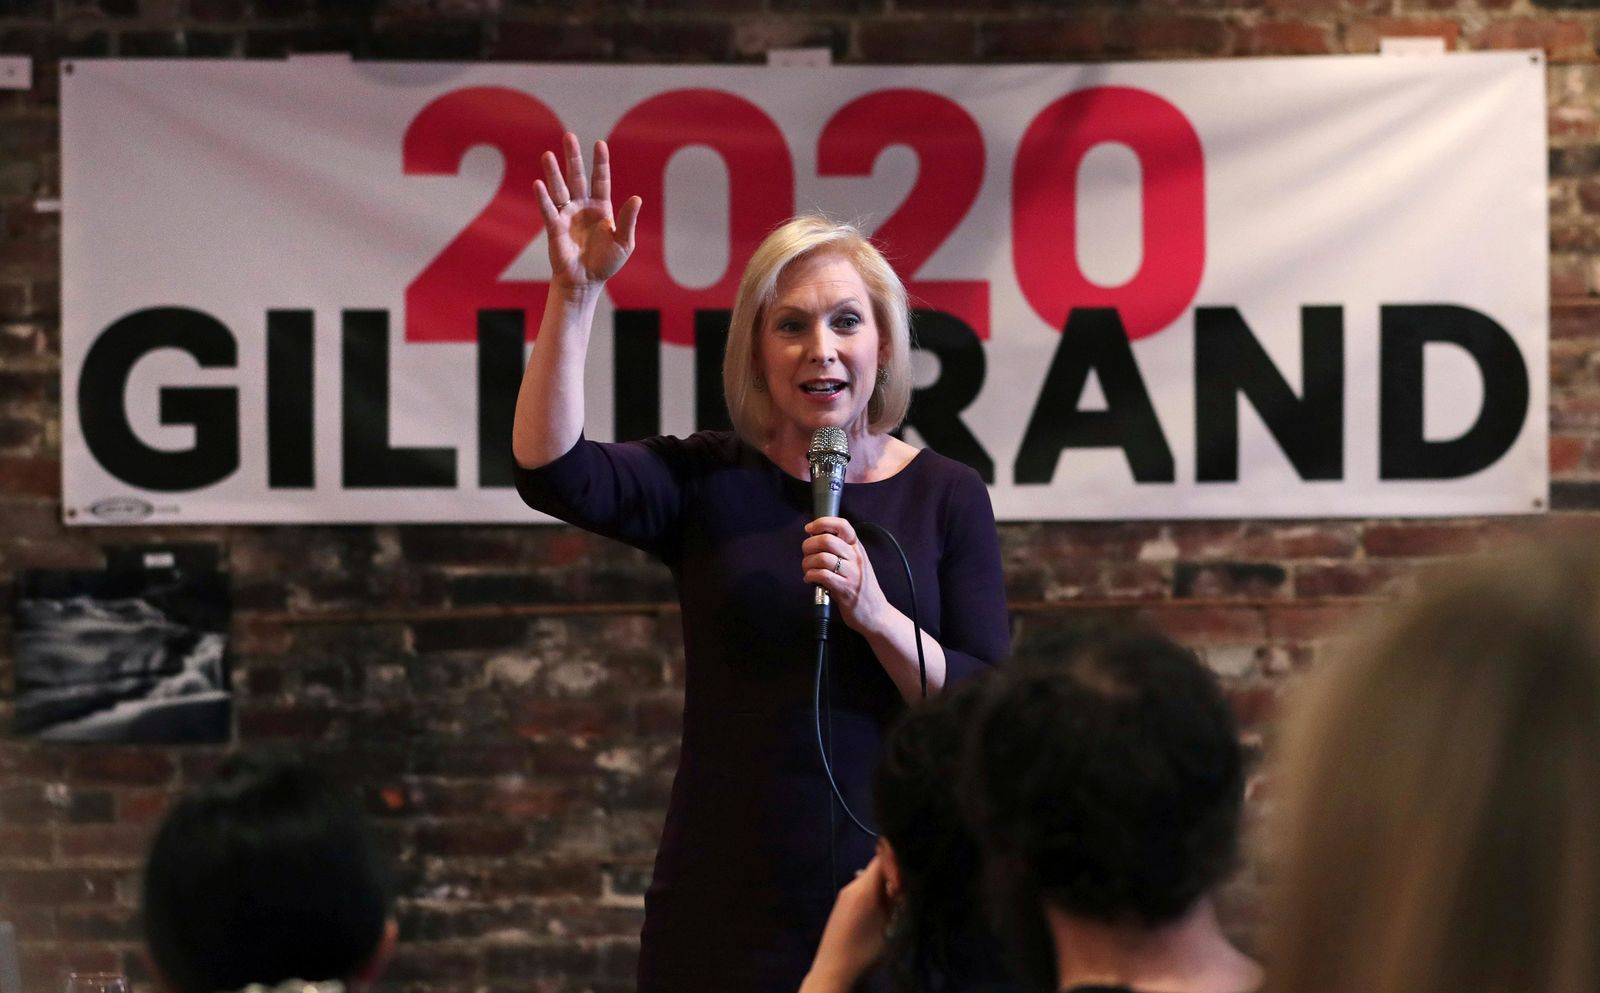 Democratic presidential candidate Sen. Kirsten Gillibrand, D-N.Y., addresses a gathering during a campaign stop at a coffee house in Dover, N.H., Friday, April 5, 2019. (AP Photo/Charles Krupa)